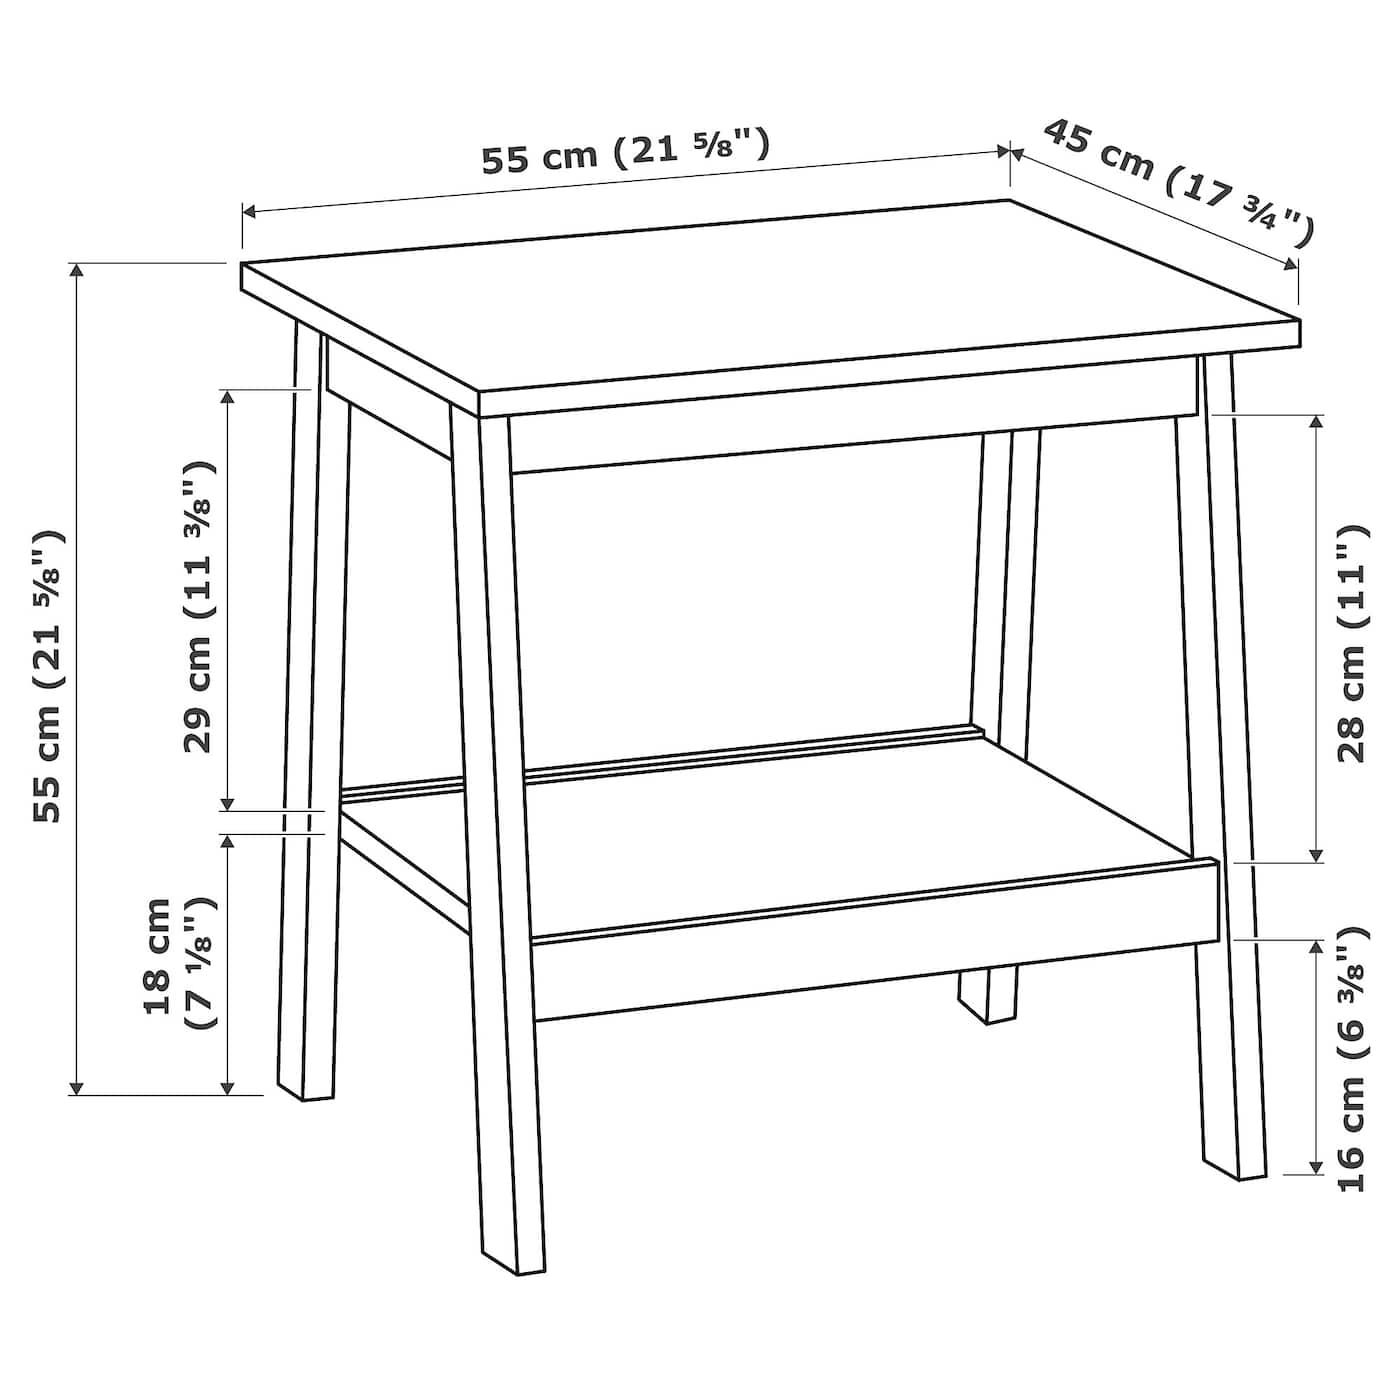 Lunnarp White Side Table 55x45 Cm Ikea Side Table White Side Tables Ikea Lack Coffee Table [ 1400 x 1400 Pixel ]